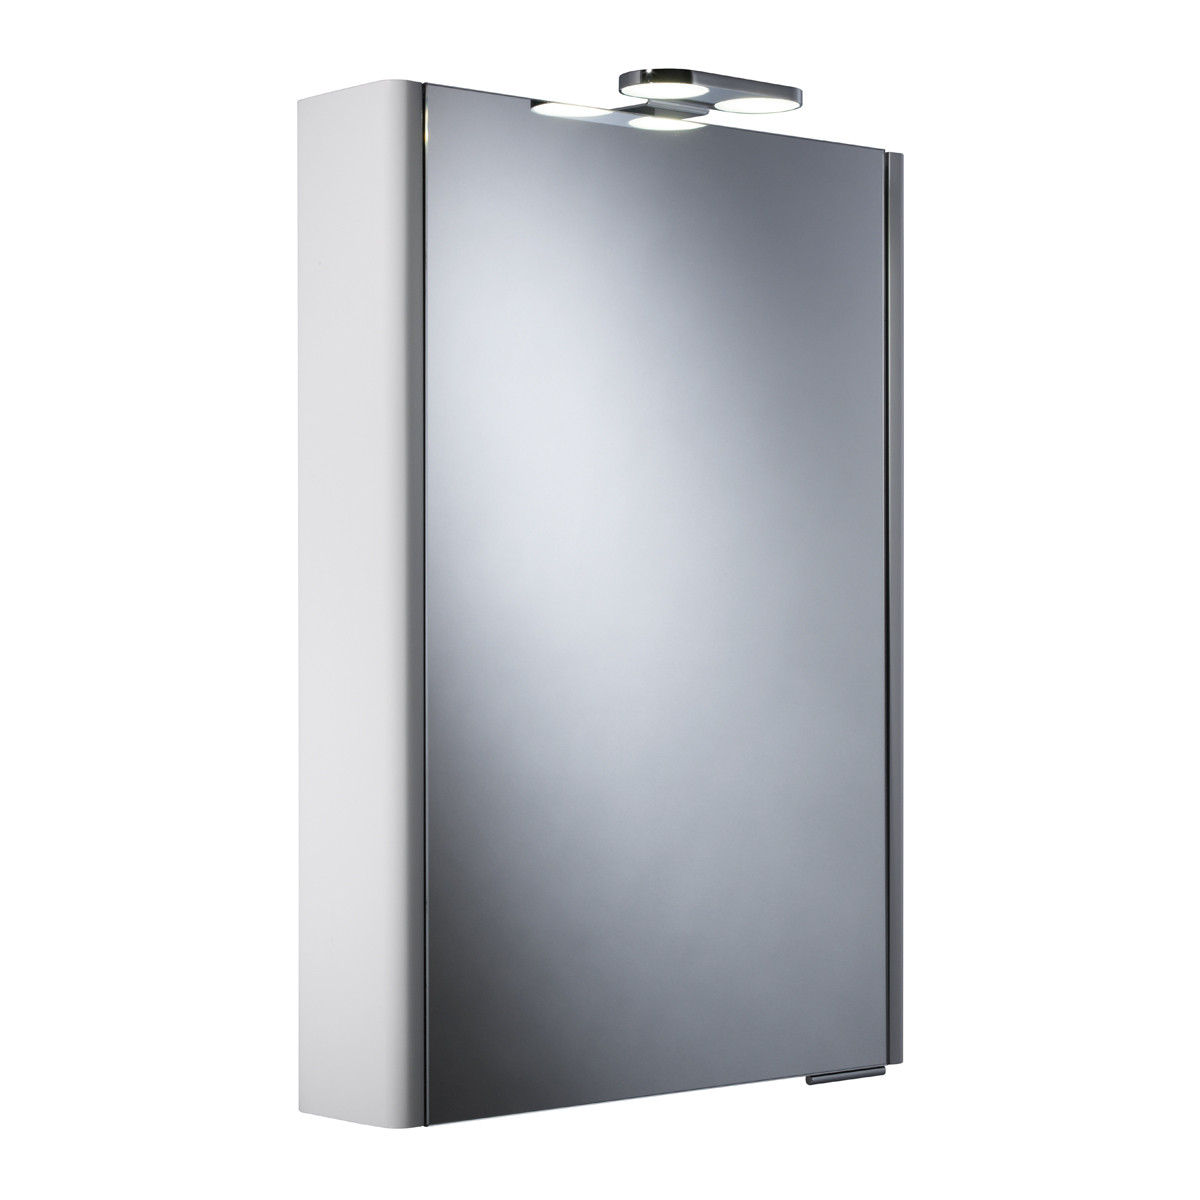 Roper Rhodes Definition Phase Illuminated Single Glass Door Cabinet